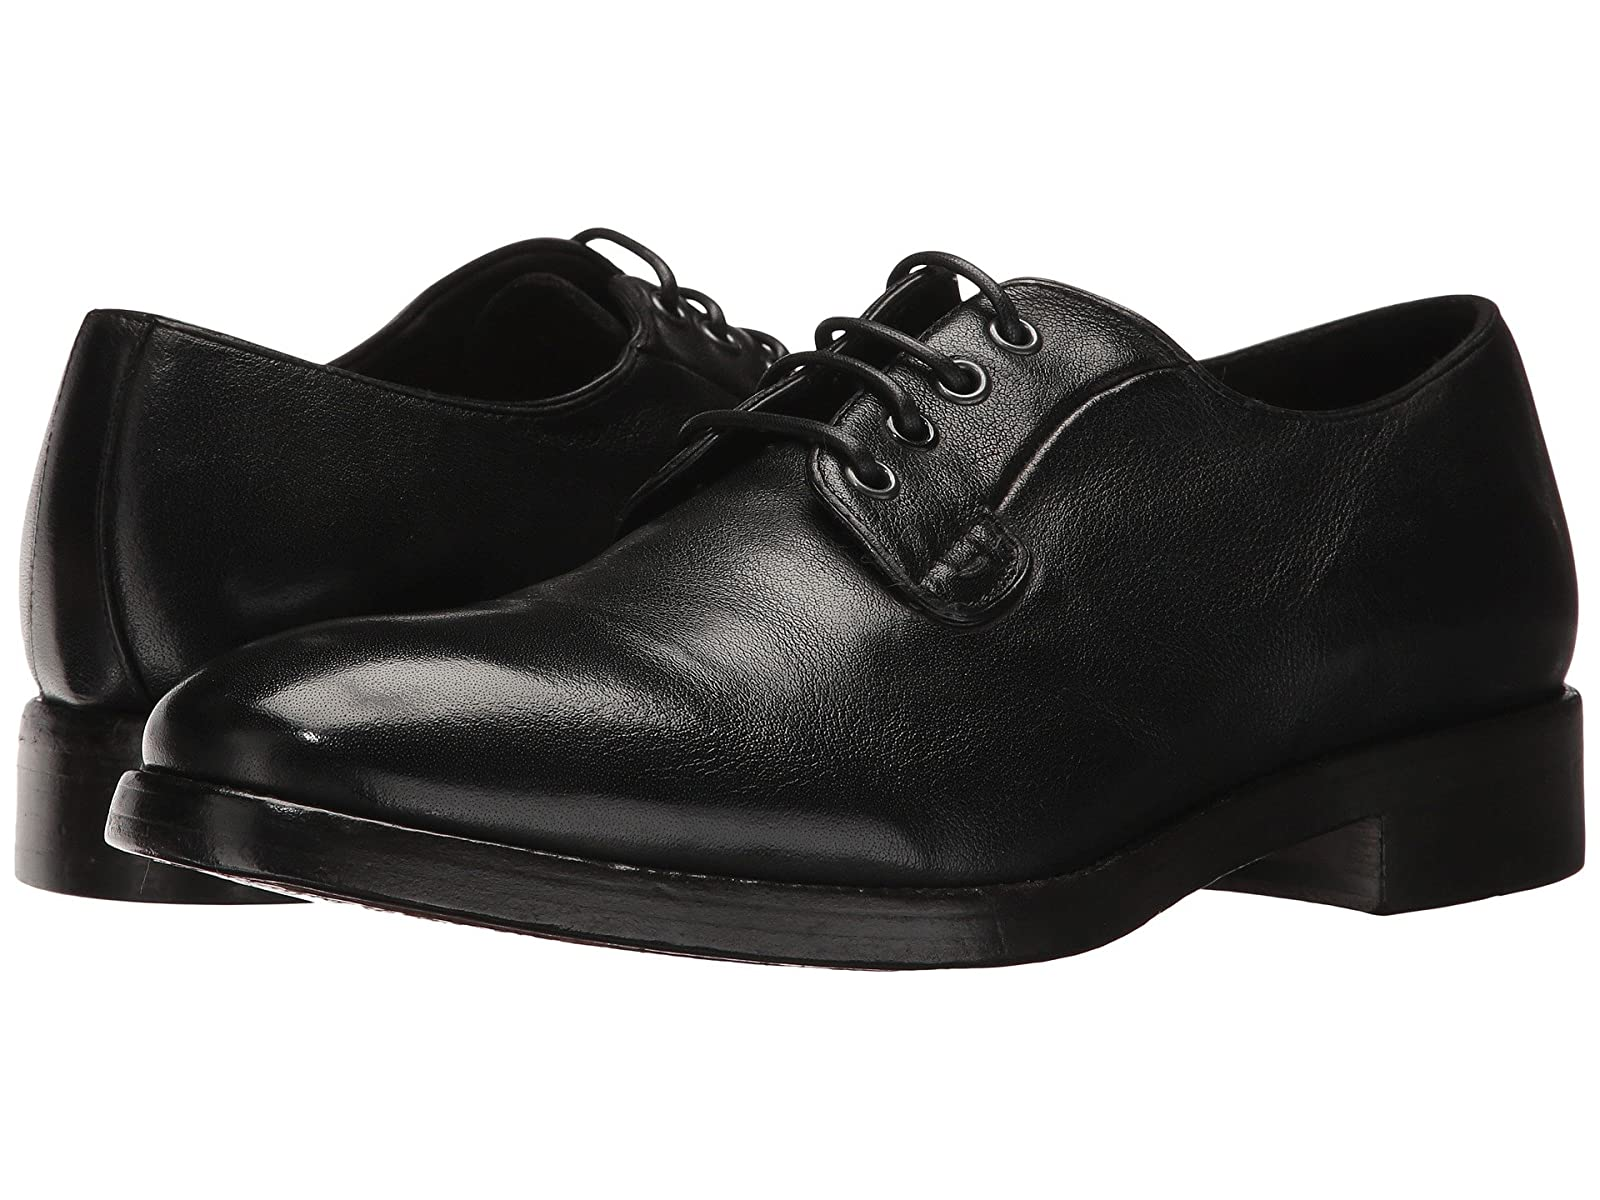 Frye Chase DerbyCheap and distinctive eye-catching shoes